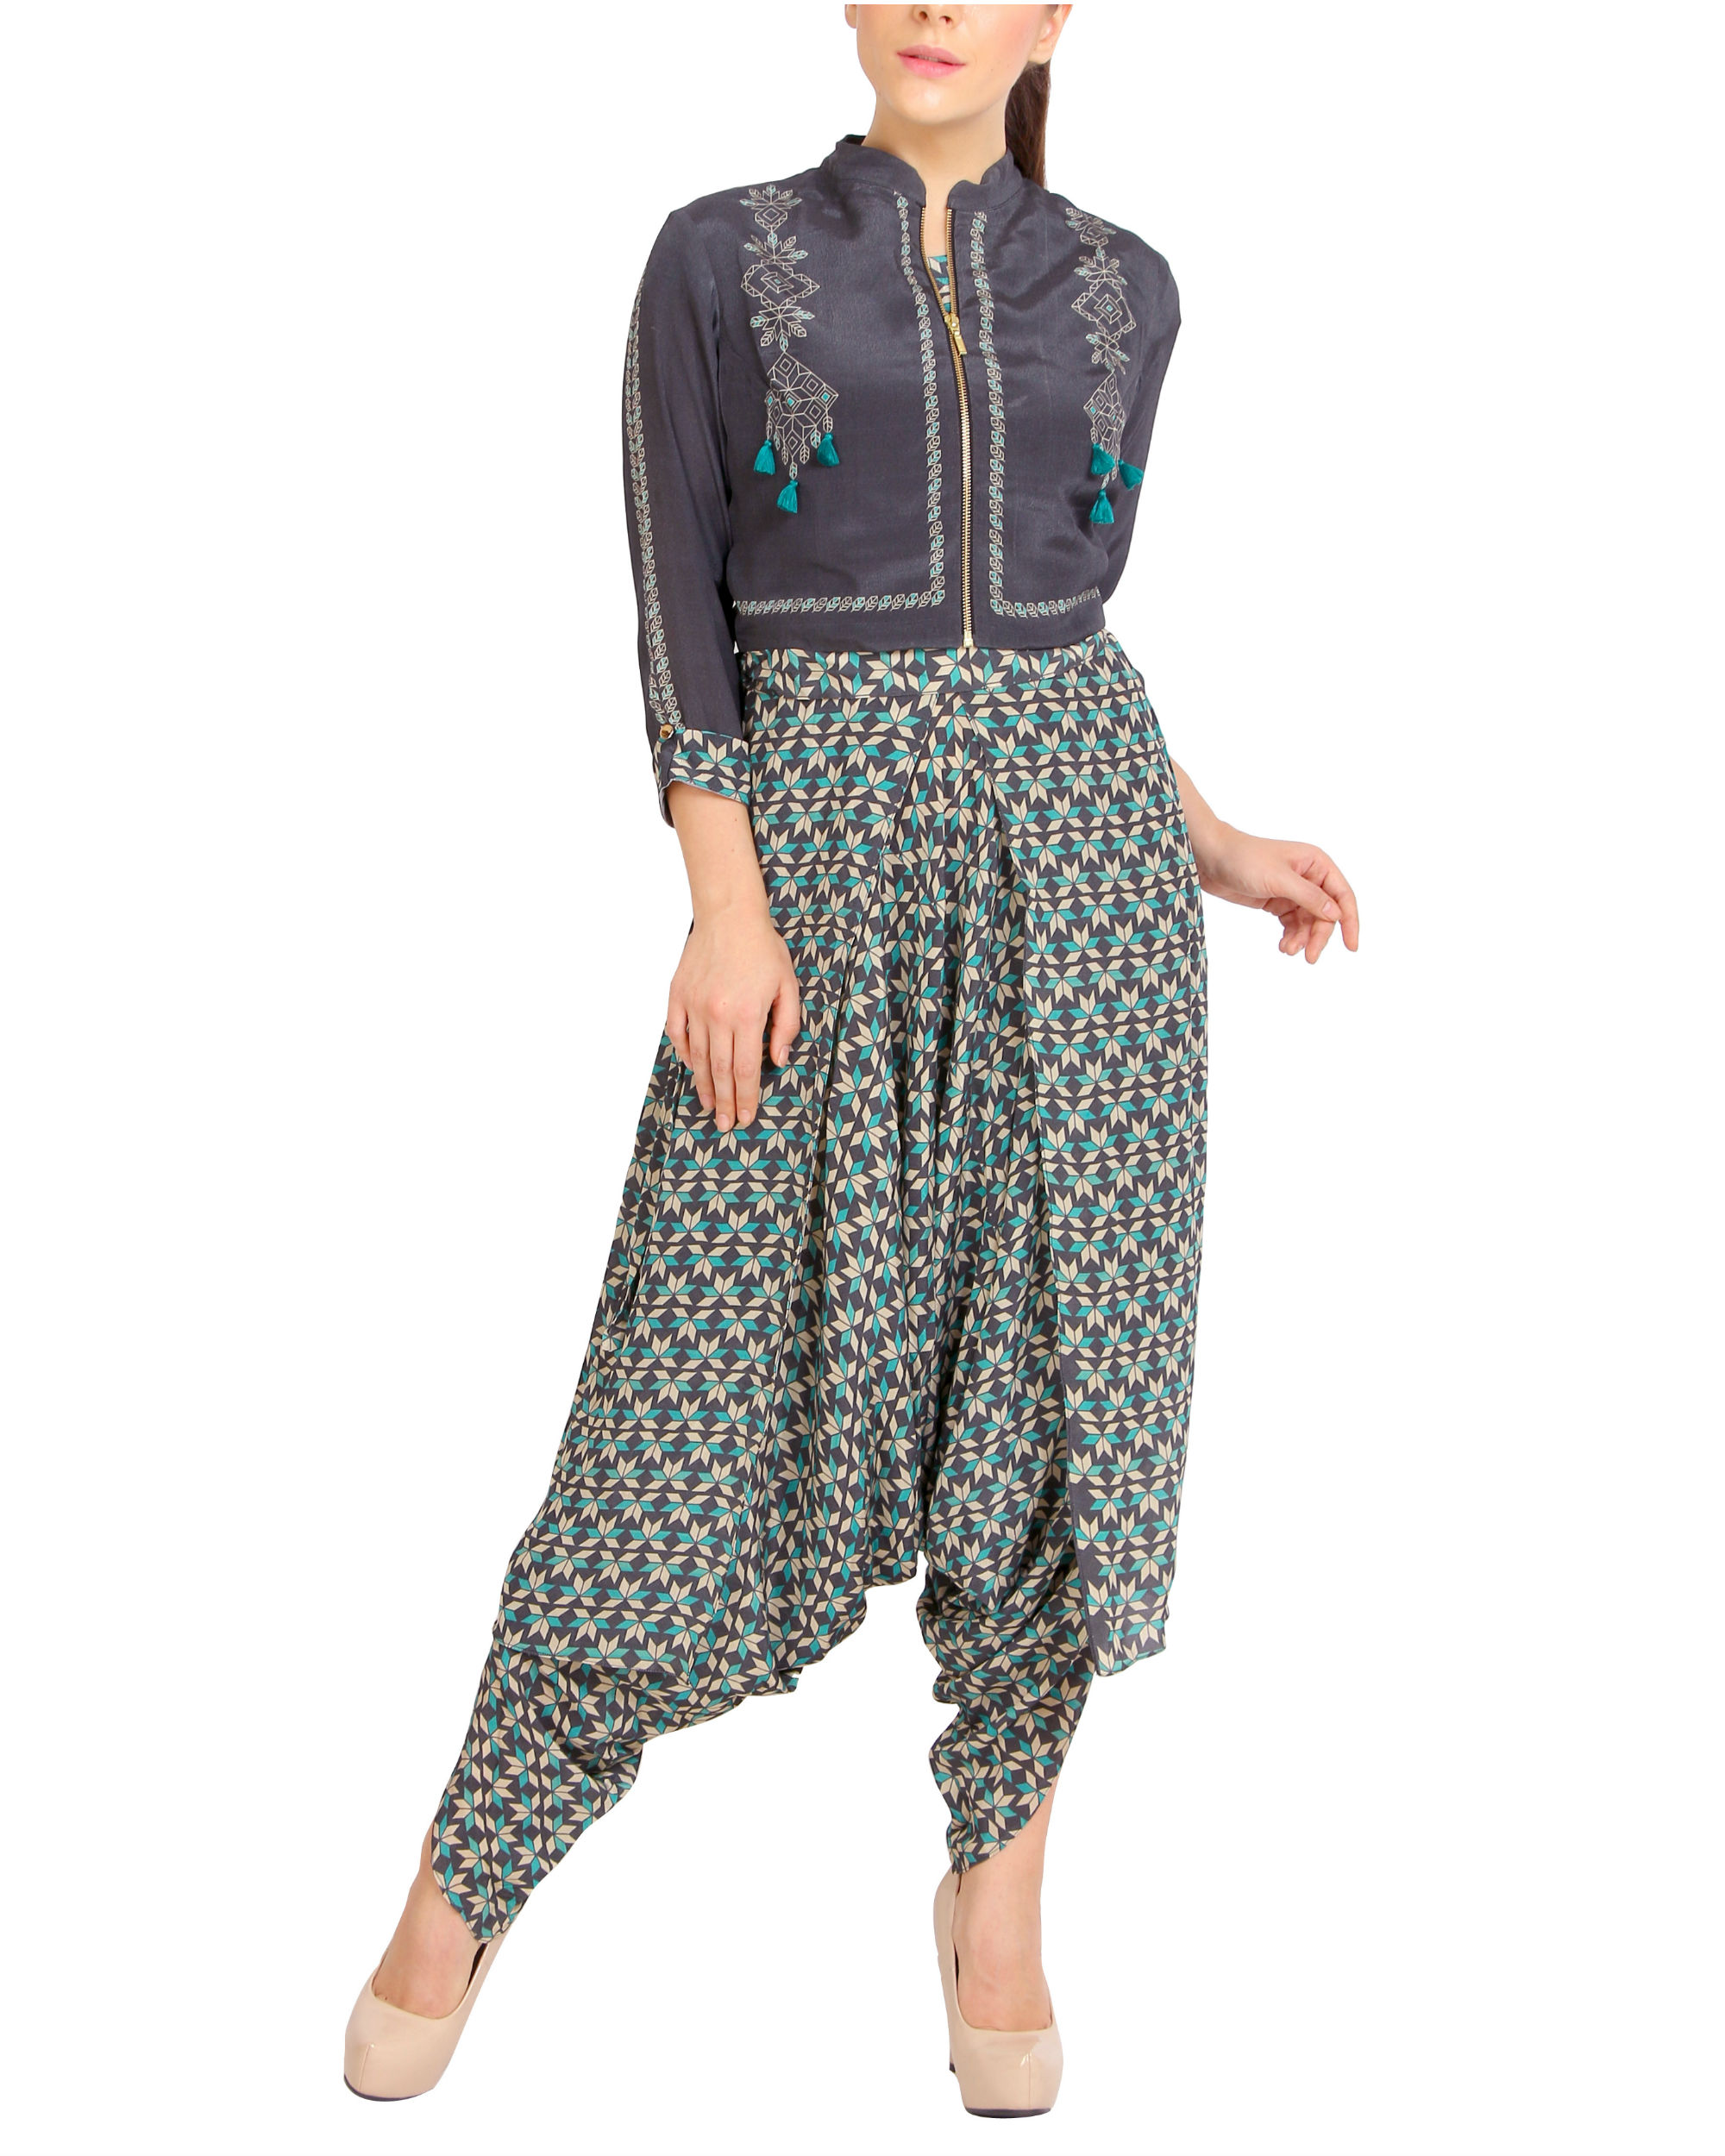 Printed dhoti jumpsuit with a zipper jacket